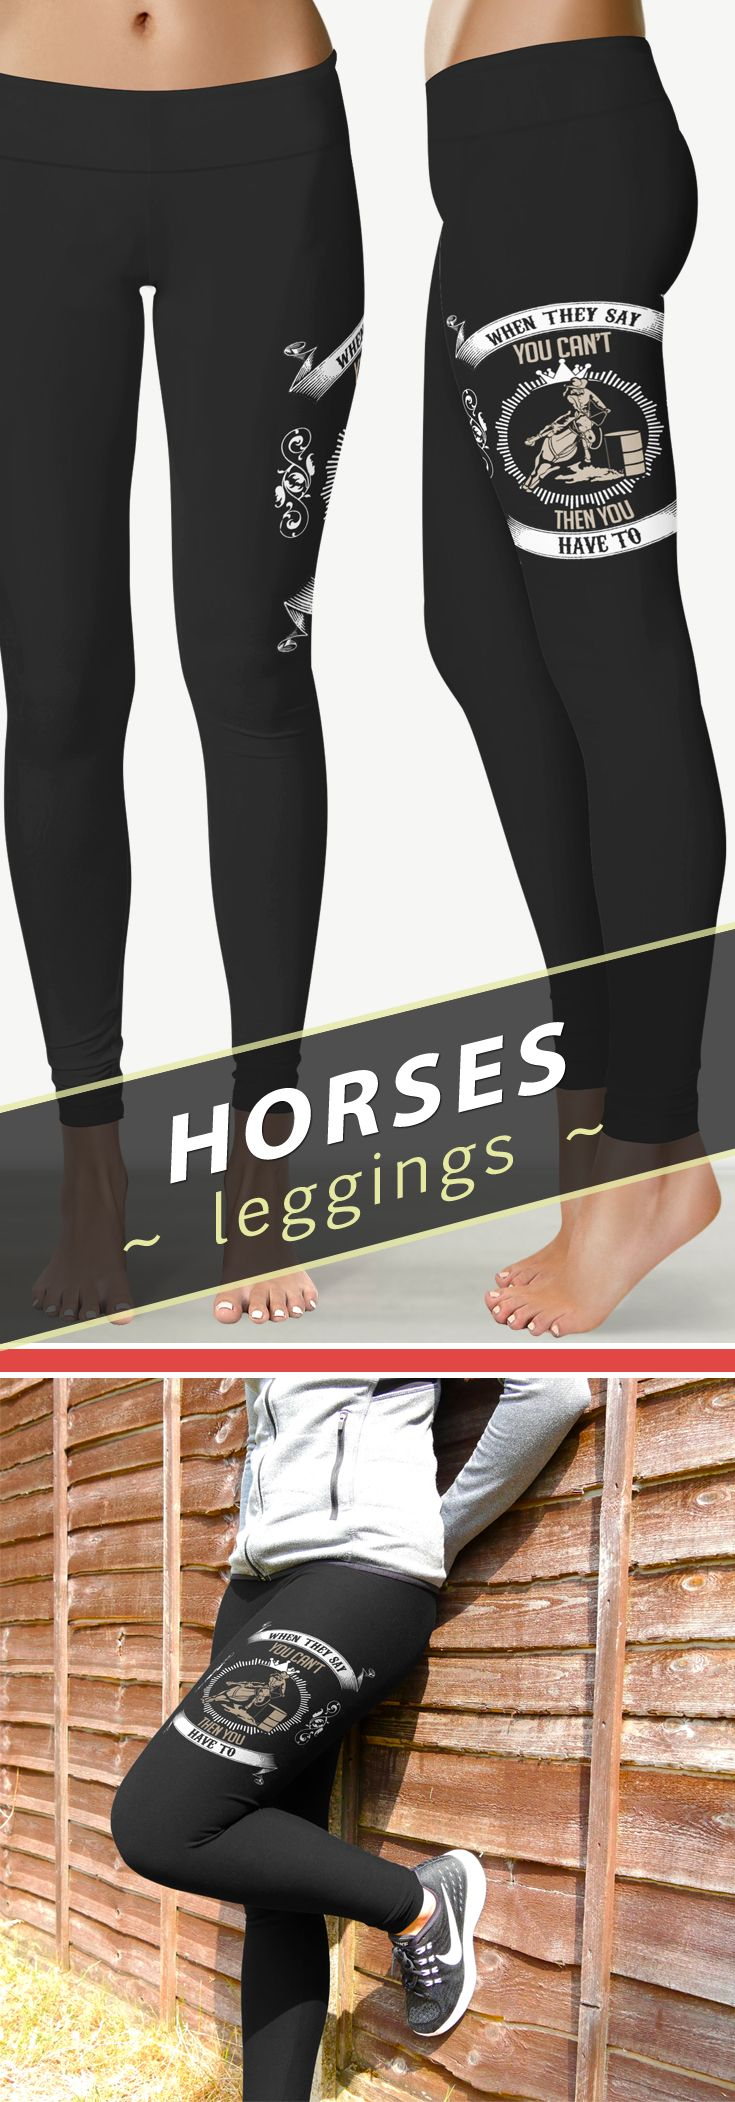 """<3 I Love These """"When They Say You Can't Then You Have To"""" Barrel Racing Leggings! <3"""